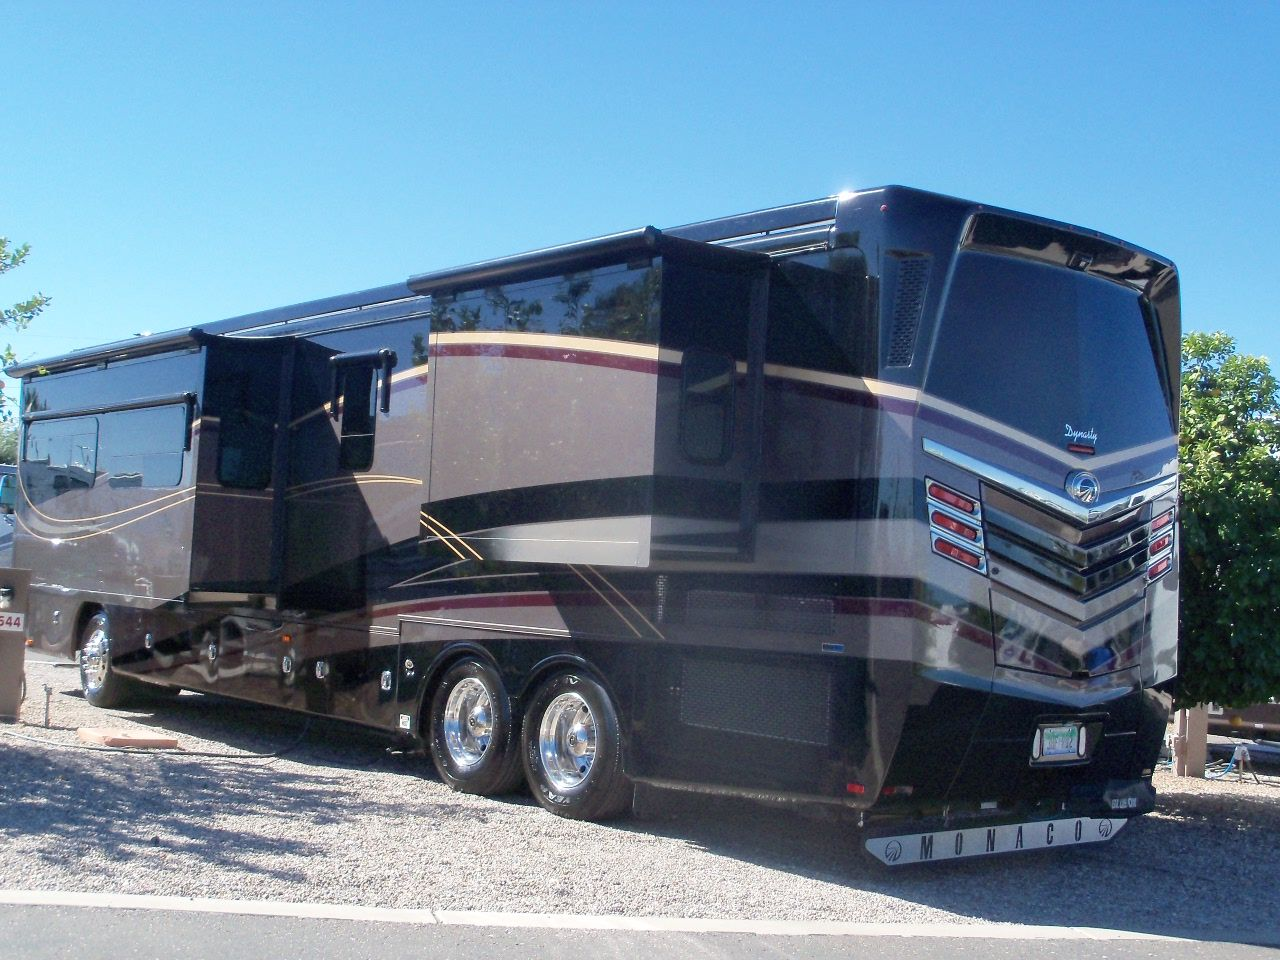 97c3b2cc62e5eecba3898a8c6b23a26d motorhome custom paint yahoo! image search results bus stripes  at reclaimingppi.co